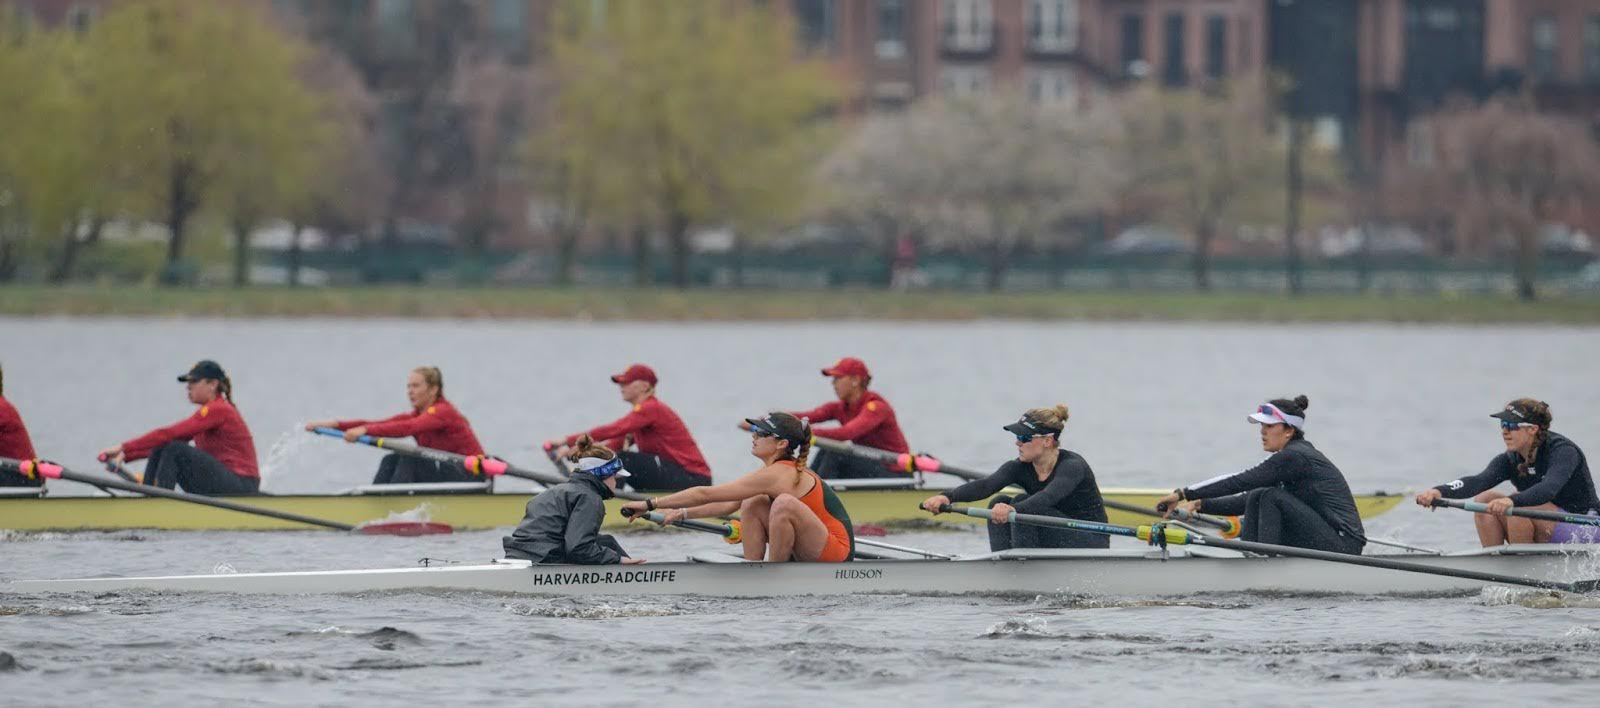 Senior rower Grace Eysenbach, pictured in the front boat in the orange and green, has appeared for both First and Second Varsity Eights for women's heavyweight crew and earned a CRCA National Scholar Athlete Award in her junior year.